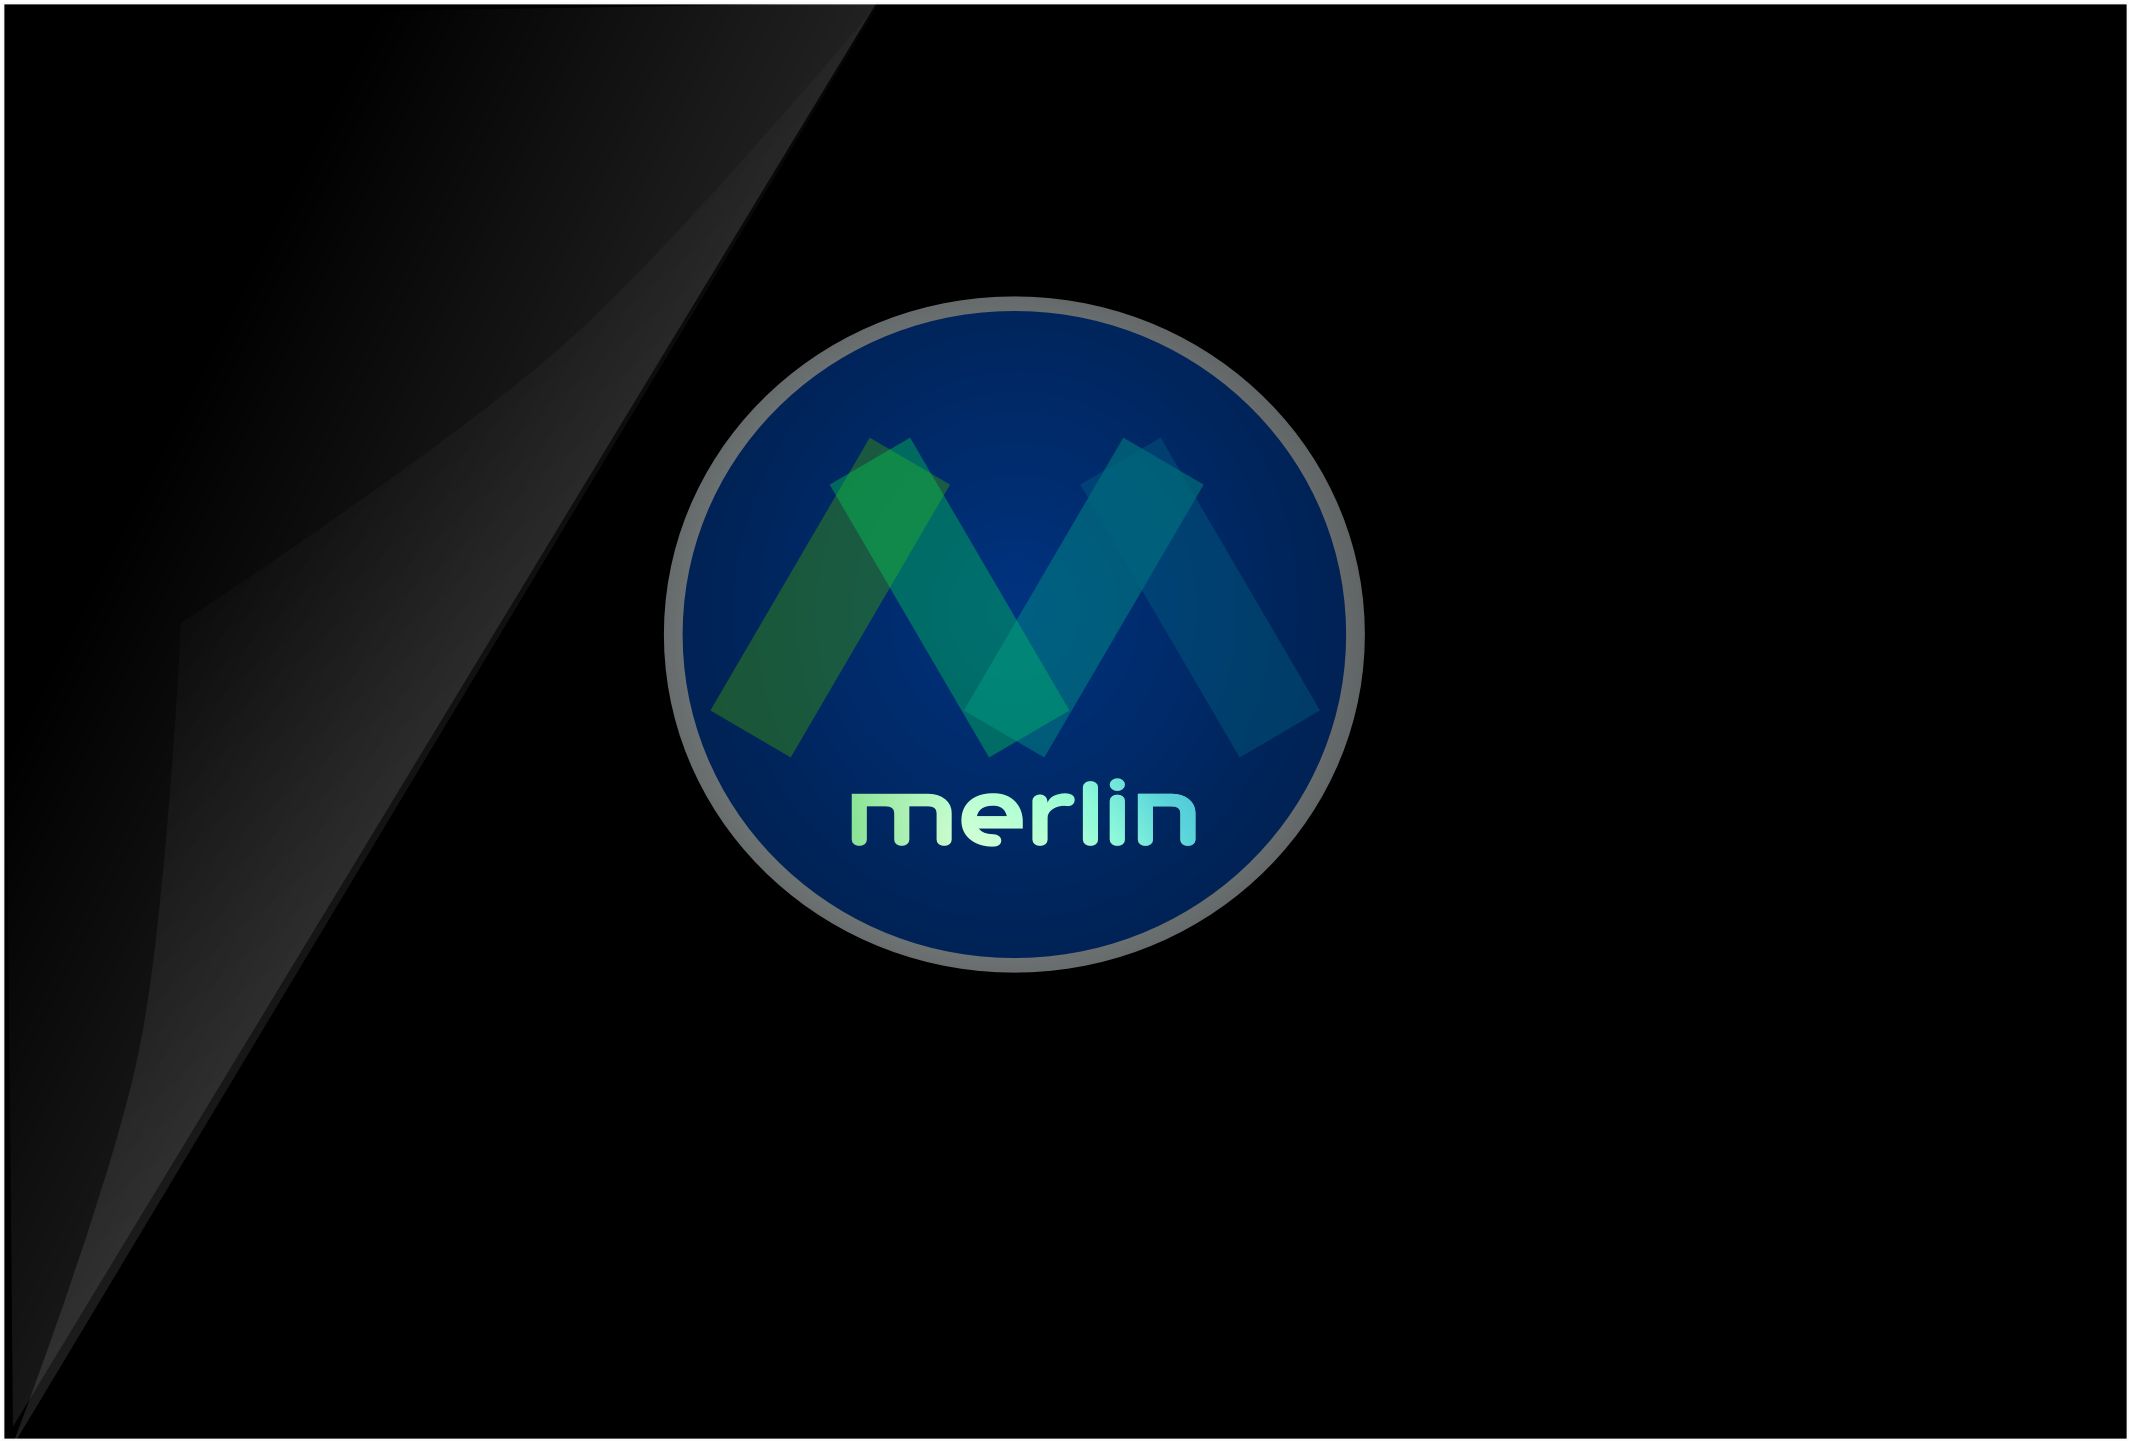 Logo Design by Arindam Khanda - Entry No. 146 in the Logo Design Contest Imaginative Logo Design for Merlin.